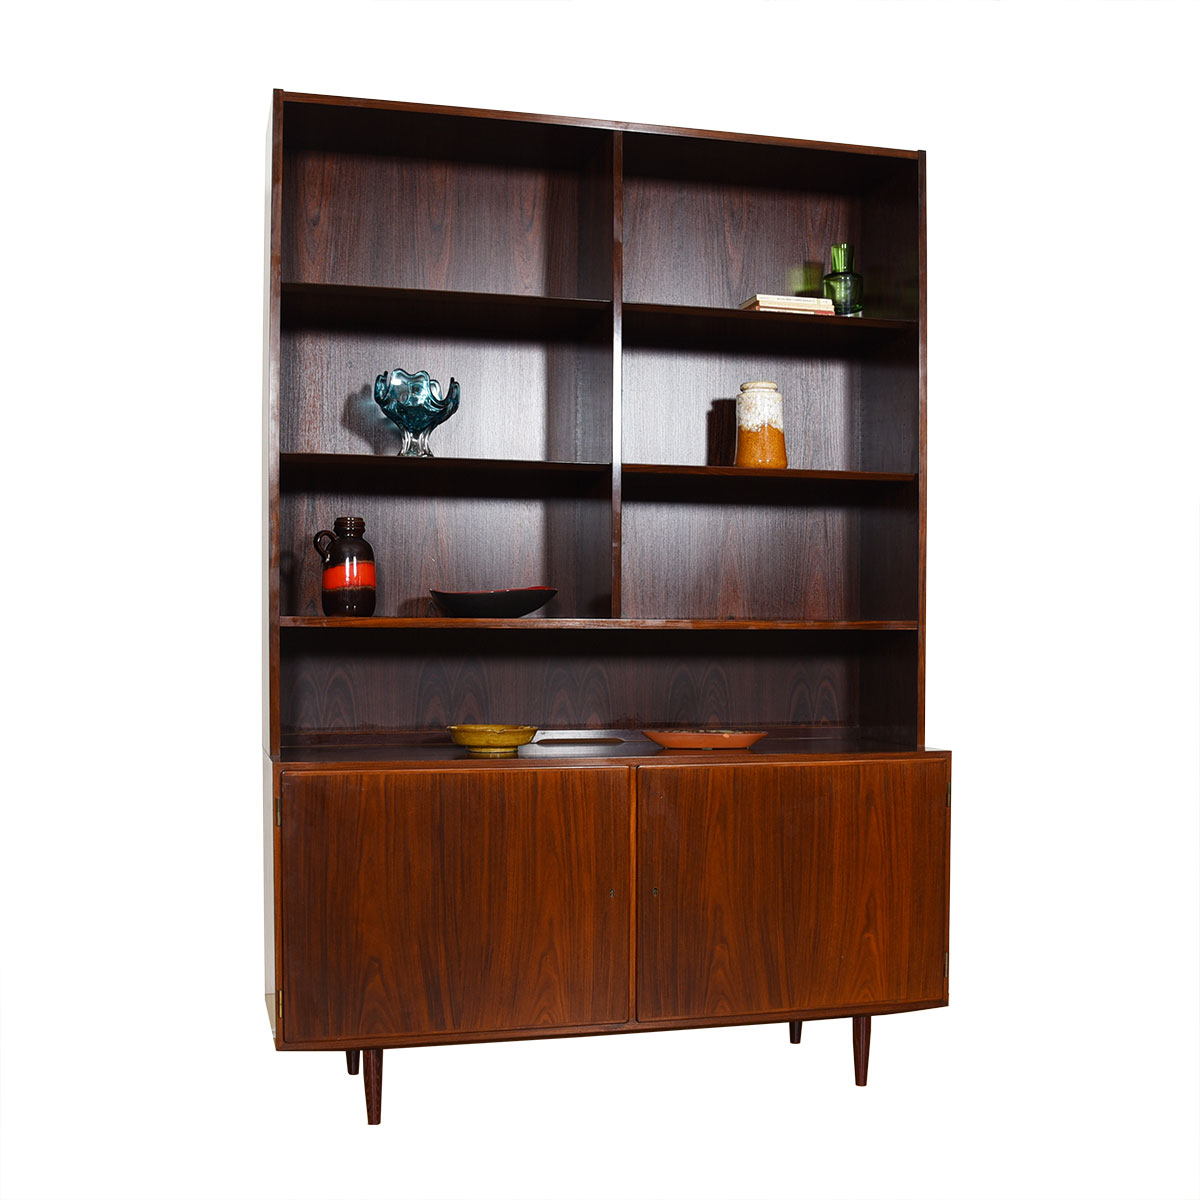 Danish Rosewood 2-Piece Bookcase / Display Cabinet